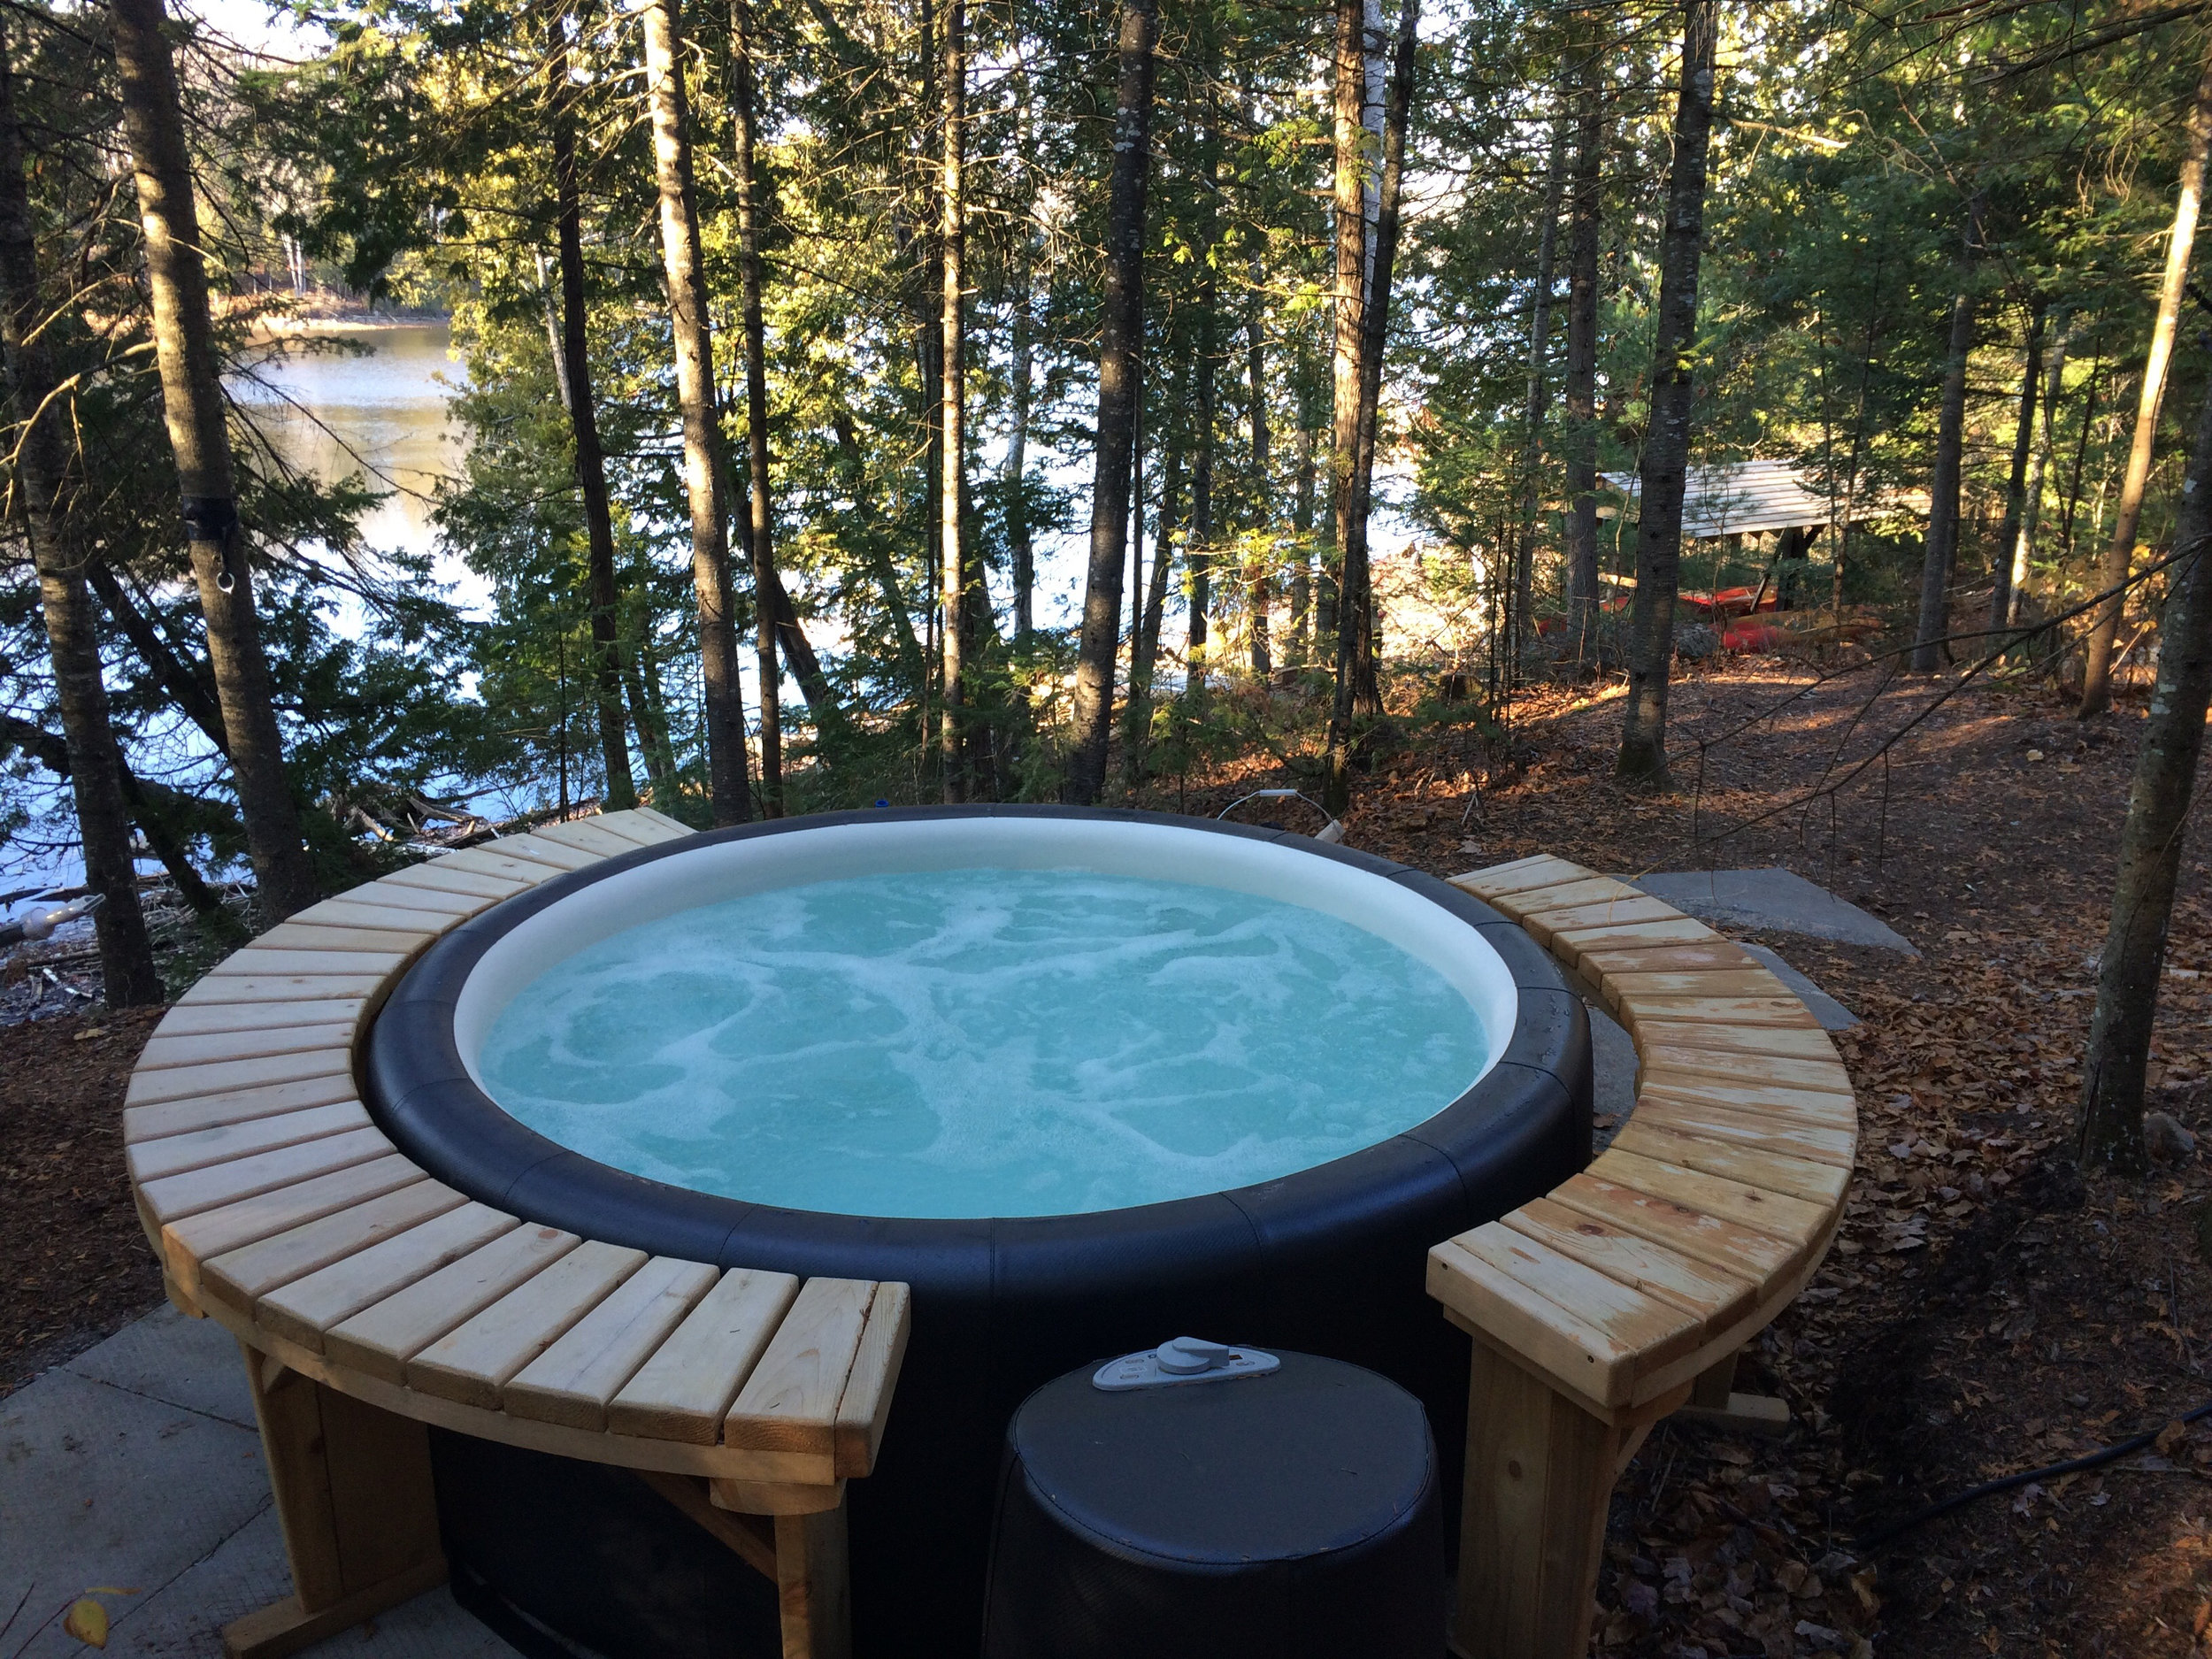 Take a Dip in Our Lakeside Hot Tub